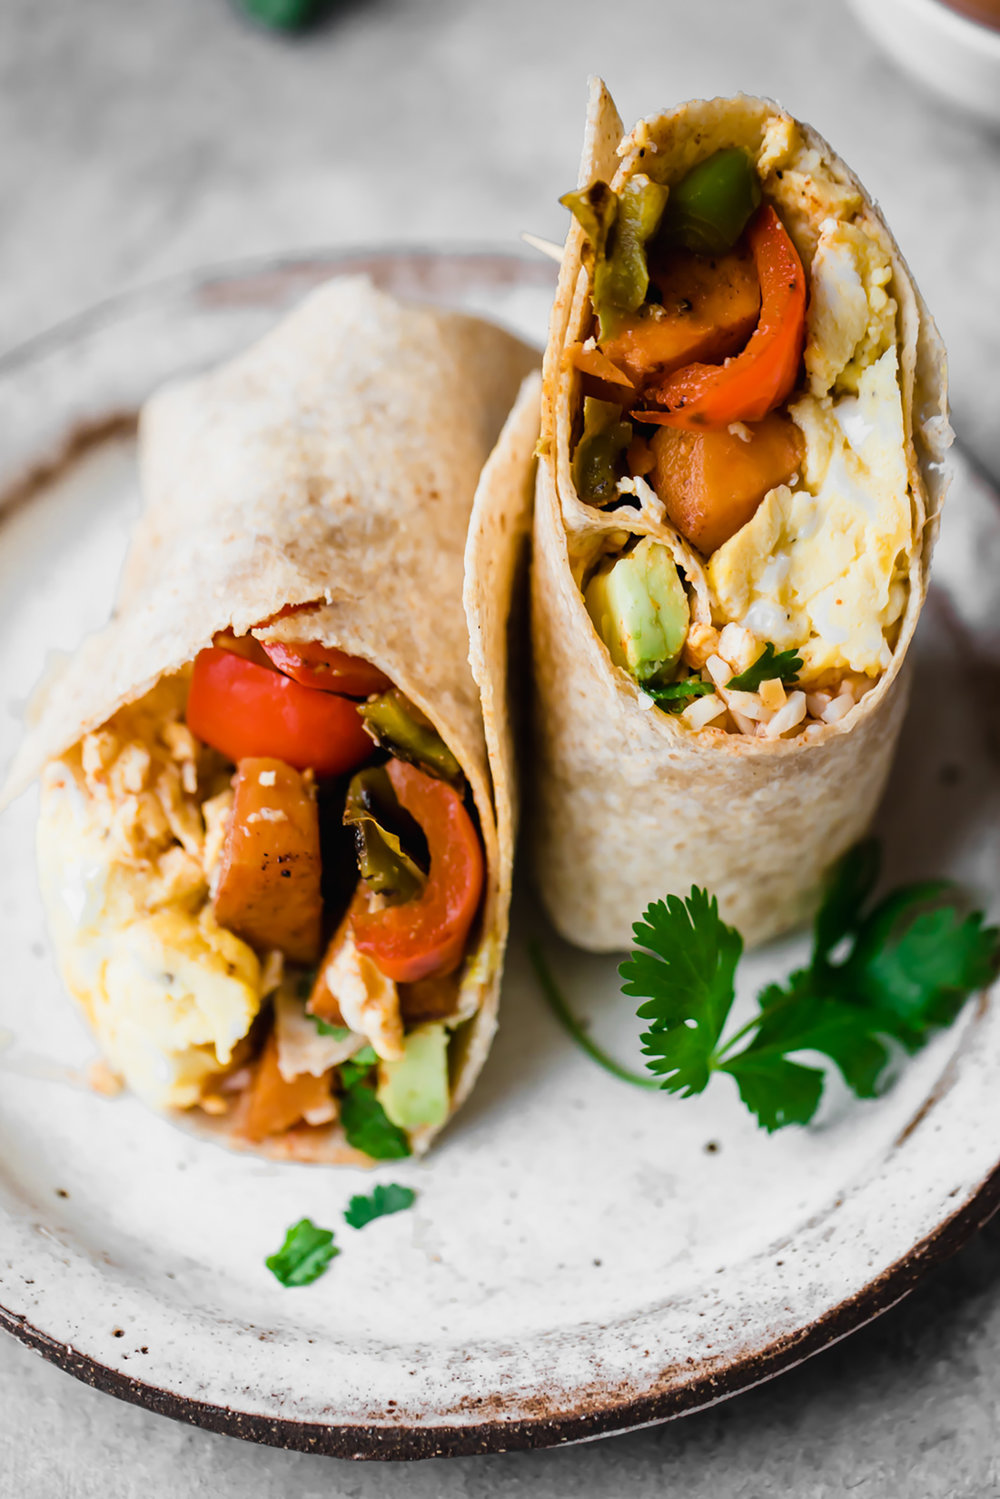 Credits: https://www.ambitiouskitchen.com/veggie-freezer-friendly-breakfast-burritos/